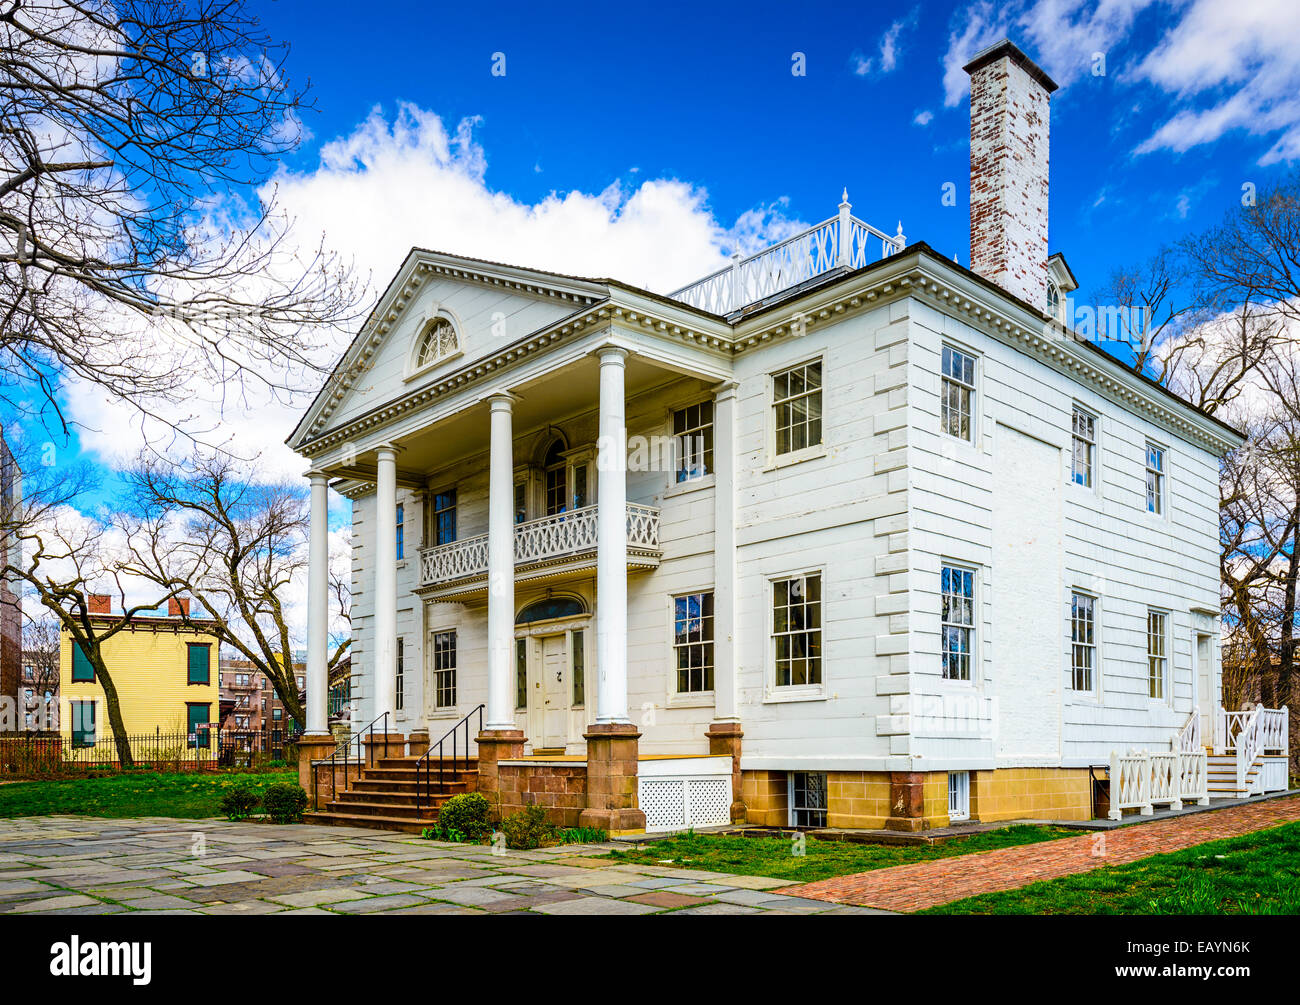 The historic Morris-Jumel Mansion in Roger Morris Park, Washington Heights, New York, New York, USA. - Stock Image